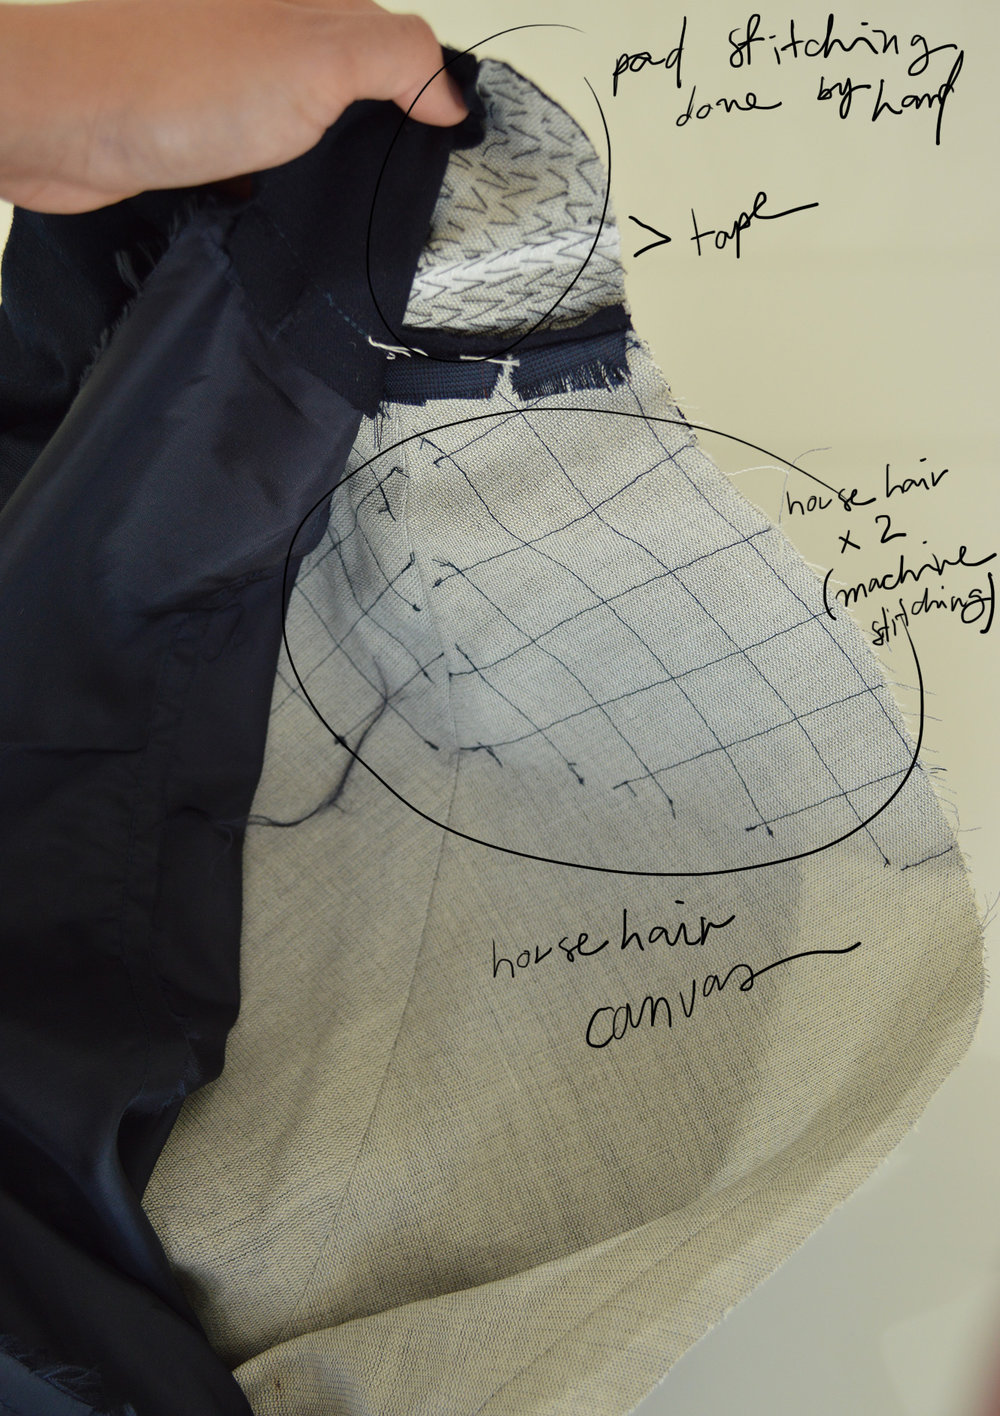 Traditional tailoring - horse hair canvas + pad stitching (2013)